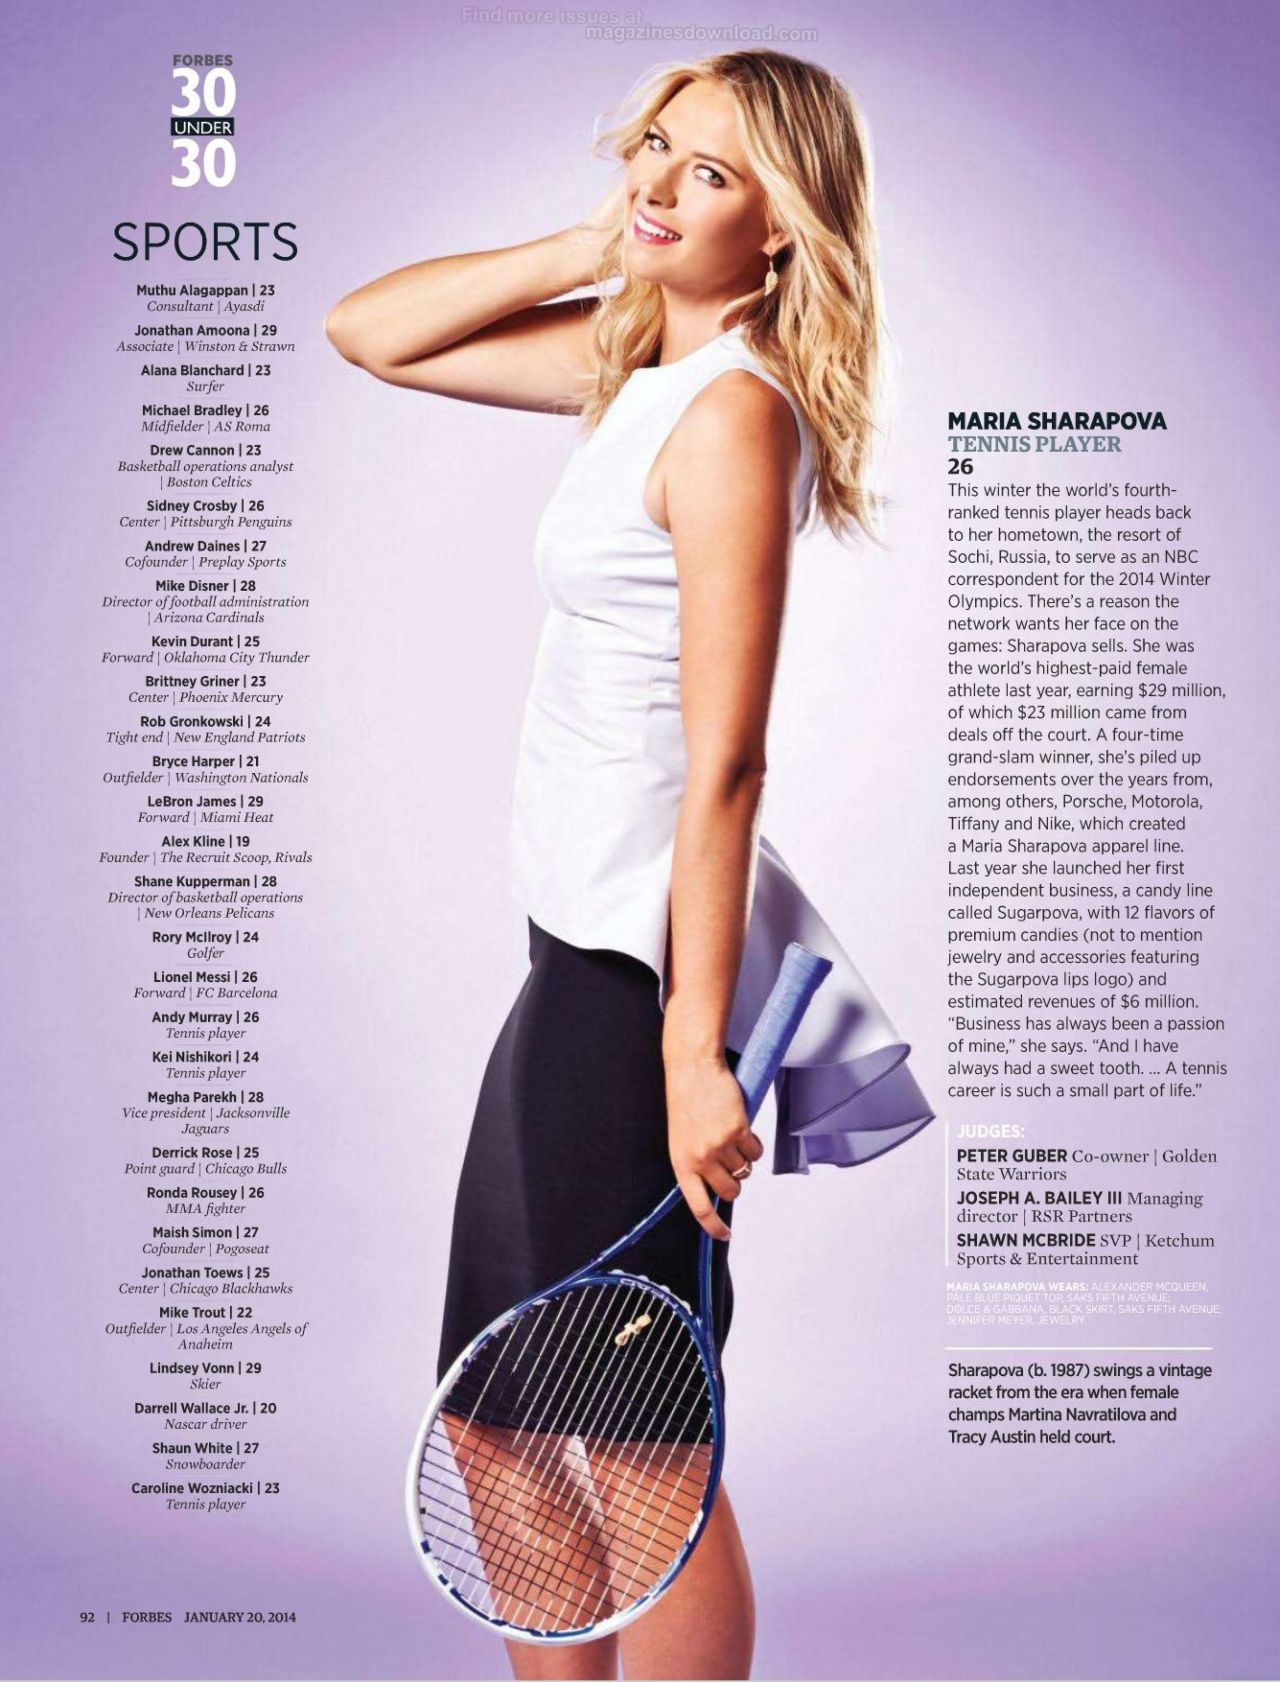 Maria Sharapova - Forbes 30 under 30 - 2014